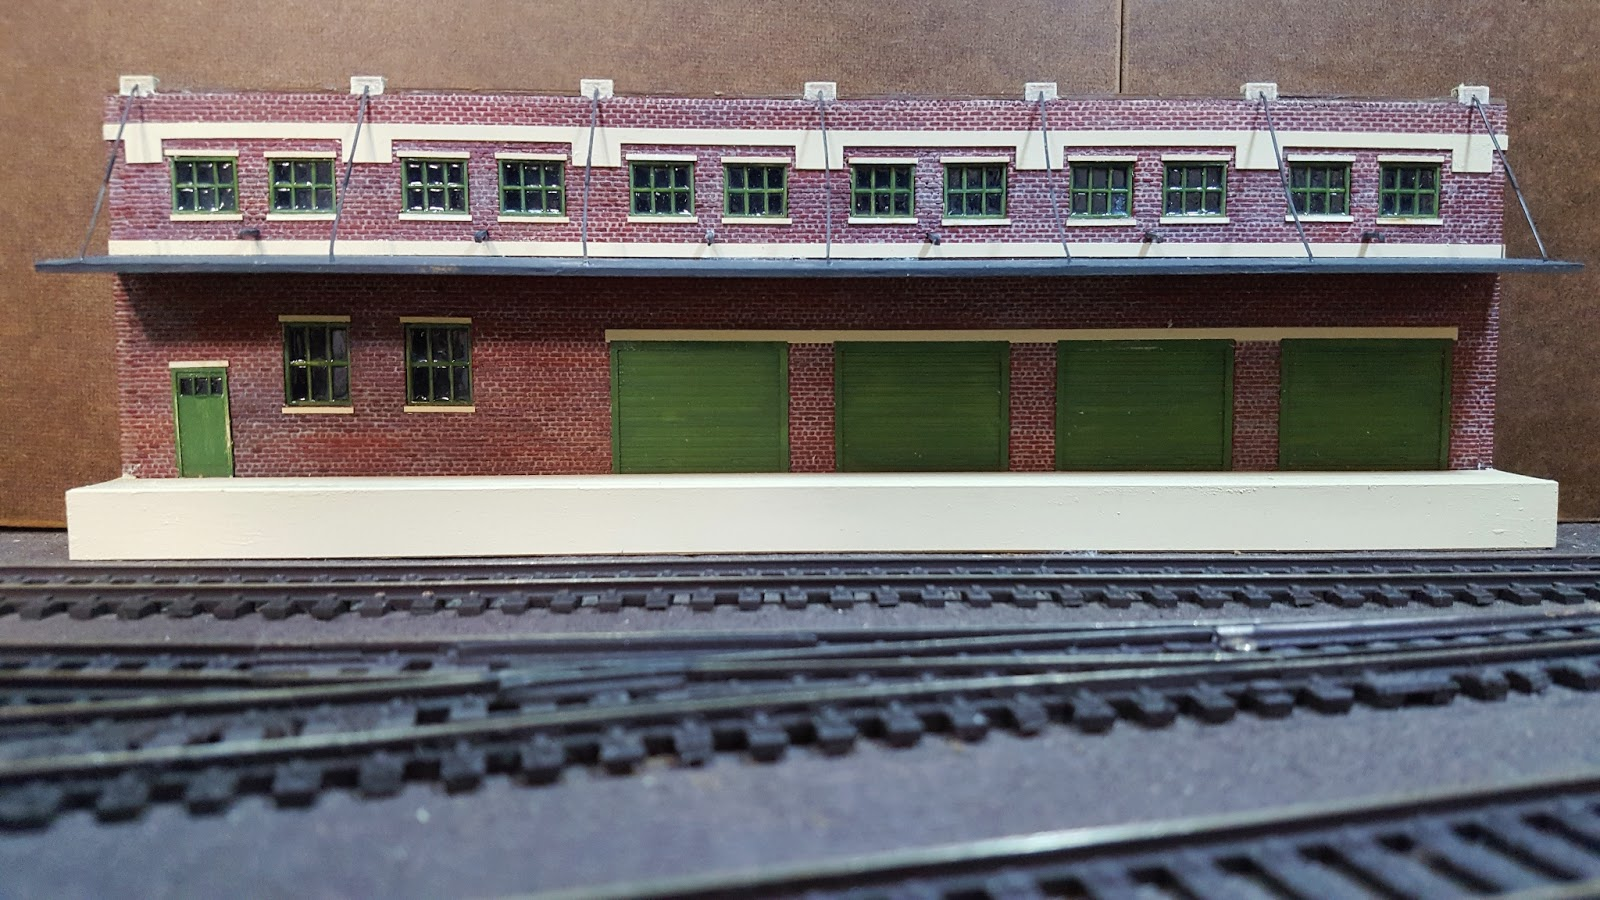 Tom's Model Railroad Scrapbook: Current Structure Projects